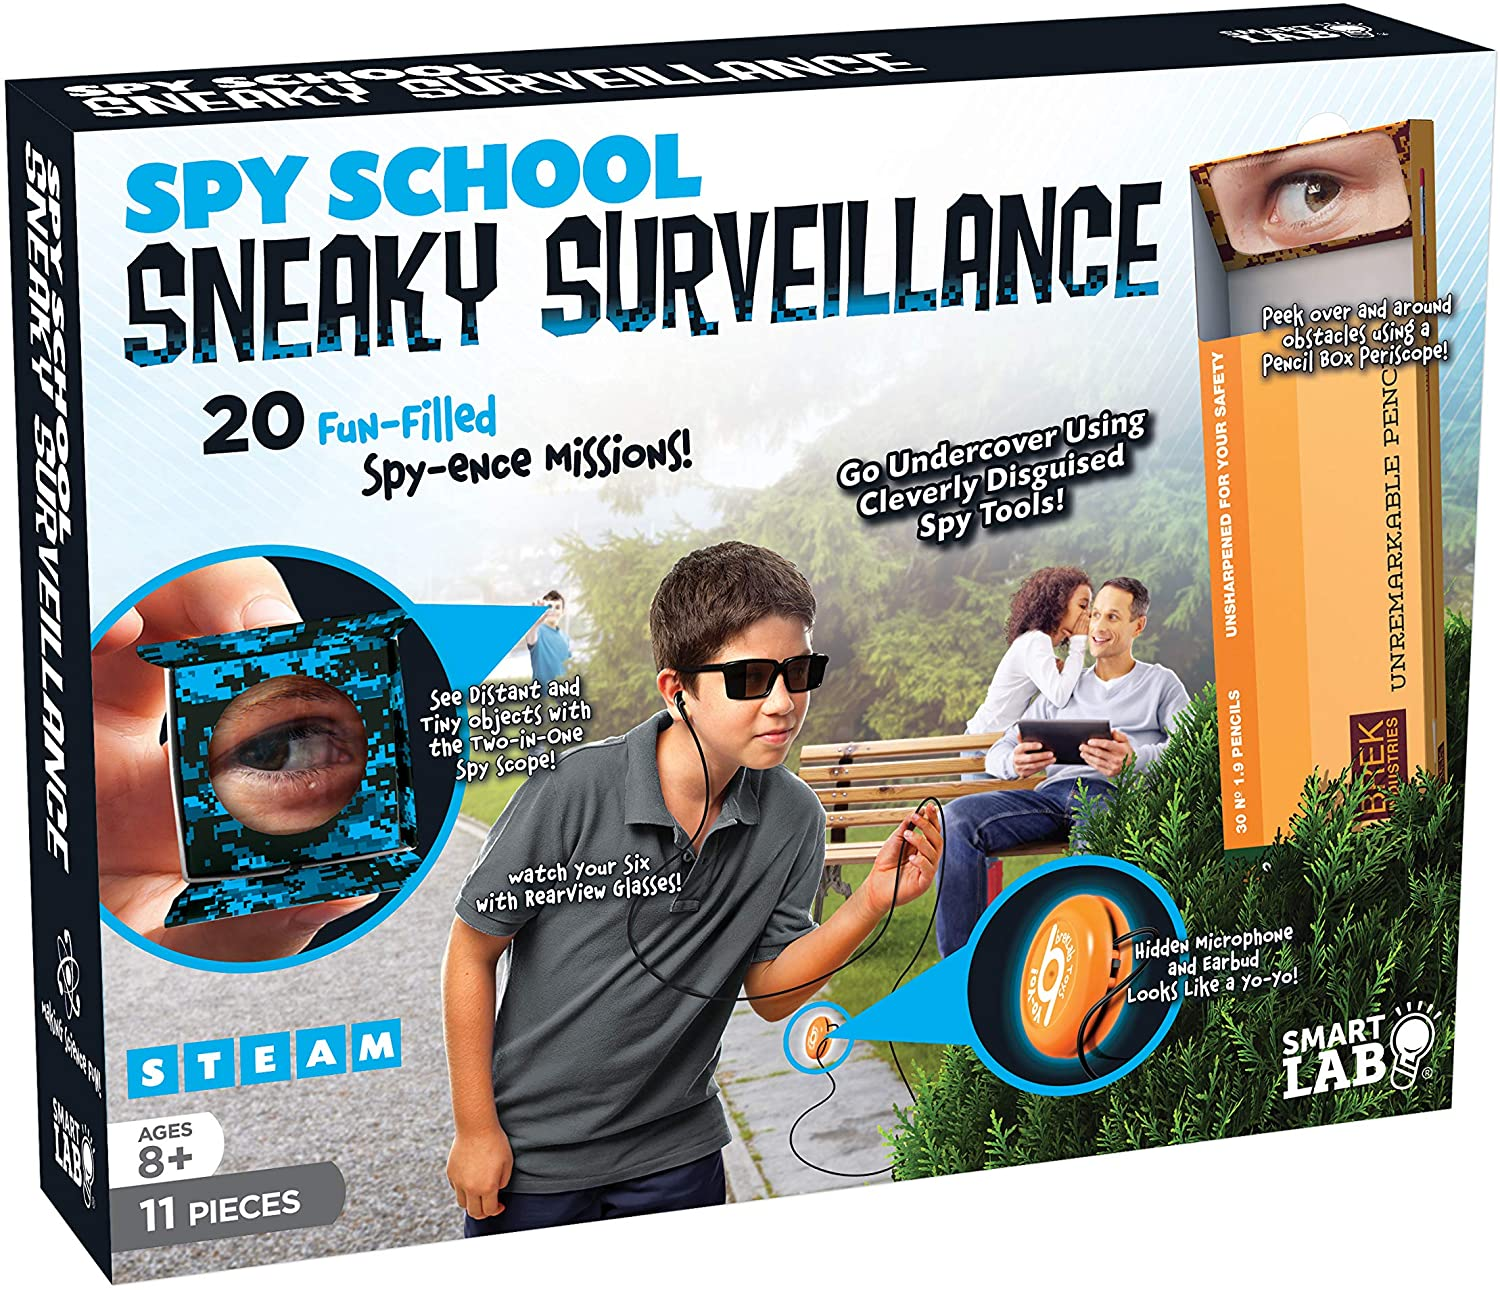 Spy School Sneaky Surveillance - 11 Pieces - Includes in-world Book, Multi (SL308685)